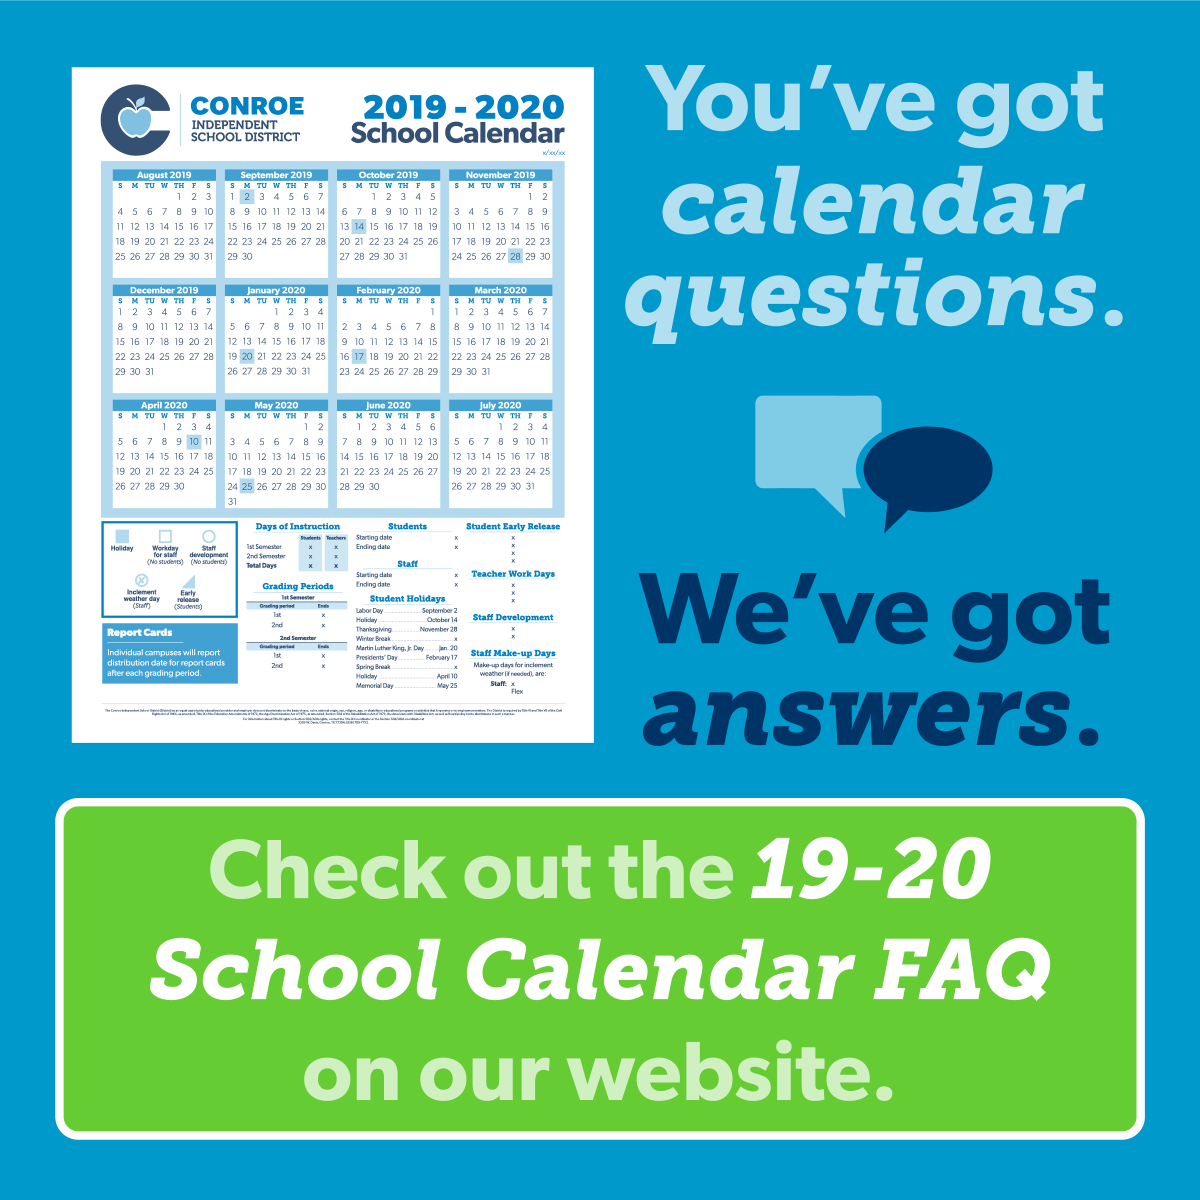 Conroe Isd Calendar 2019 2020.Conroe Isd On Twitter Questions About The 19 20 Calendar Drafts